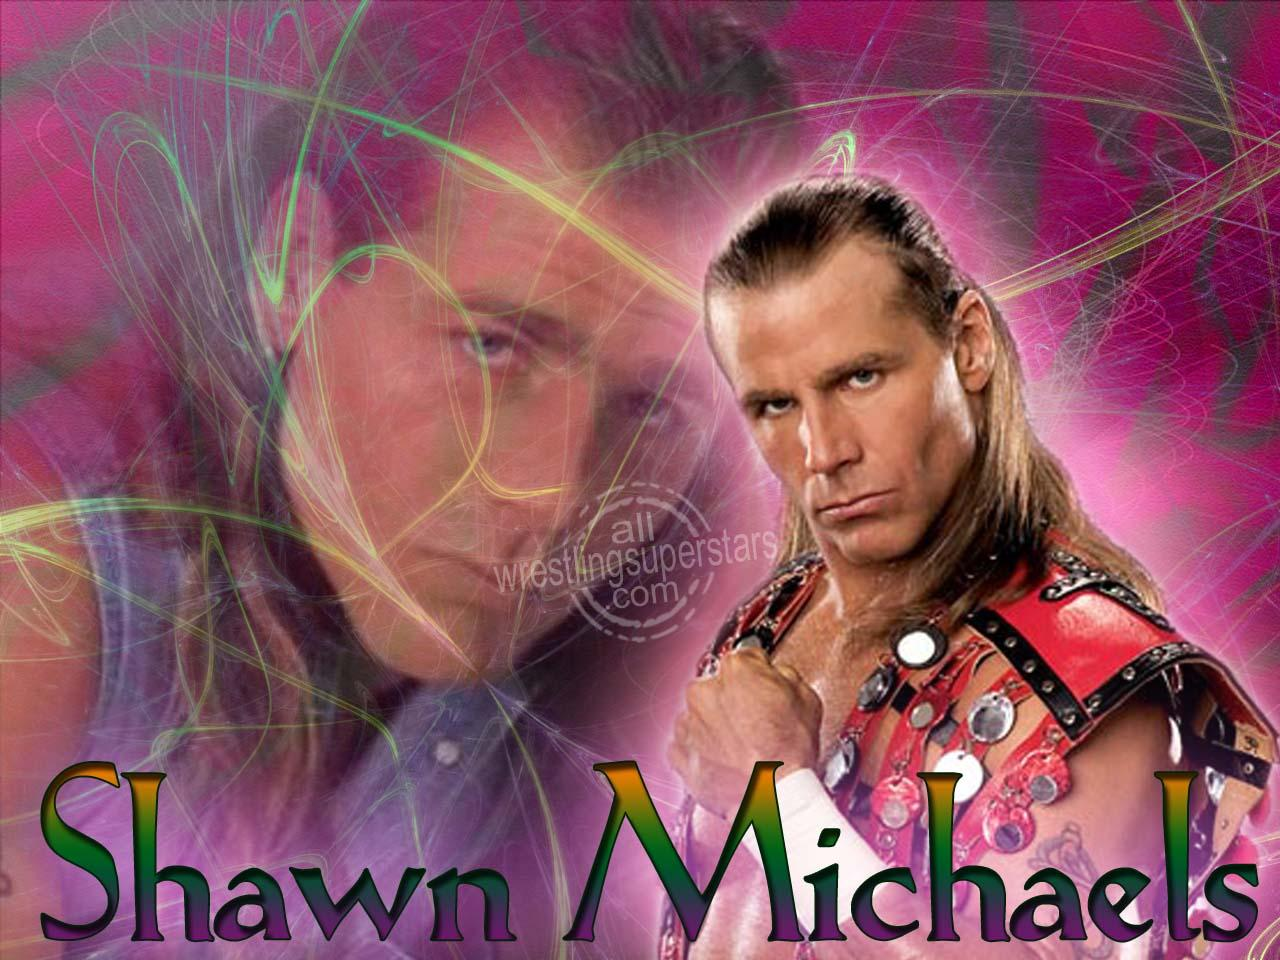 WWE Hot Wallpapers Wwe Wallpapers Hbk Shawn Michaels 1280x960